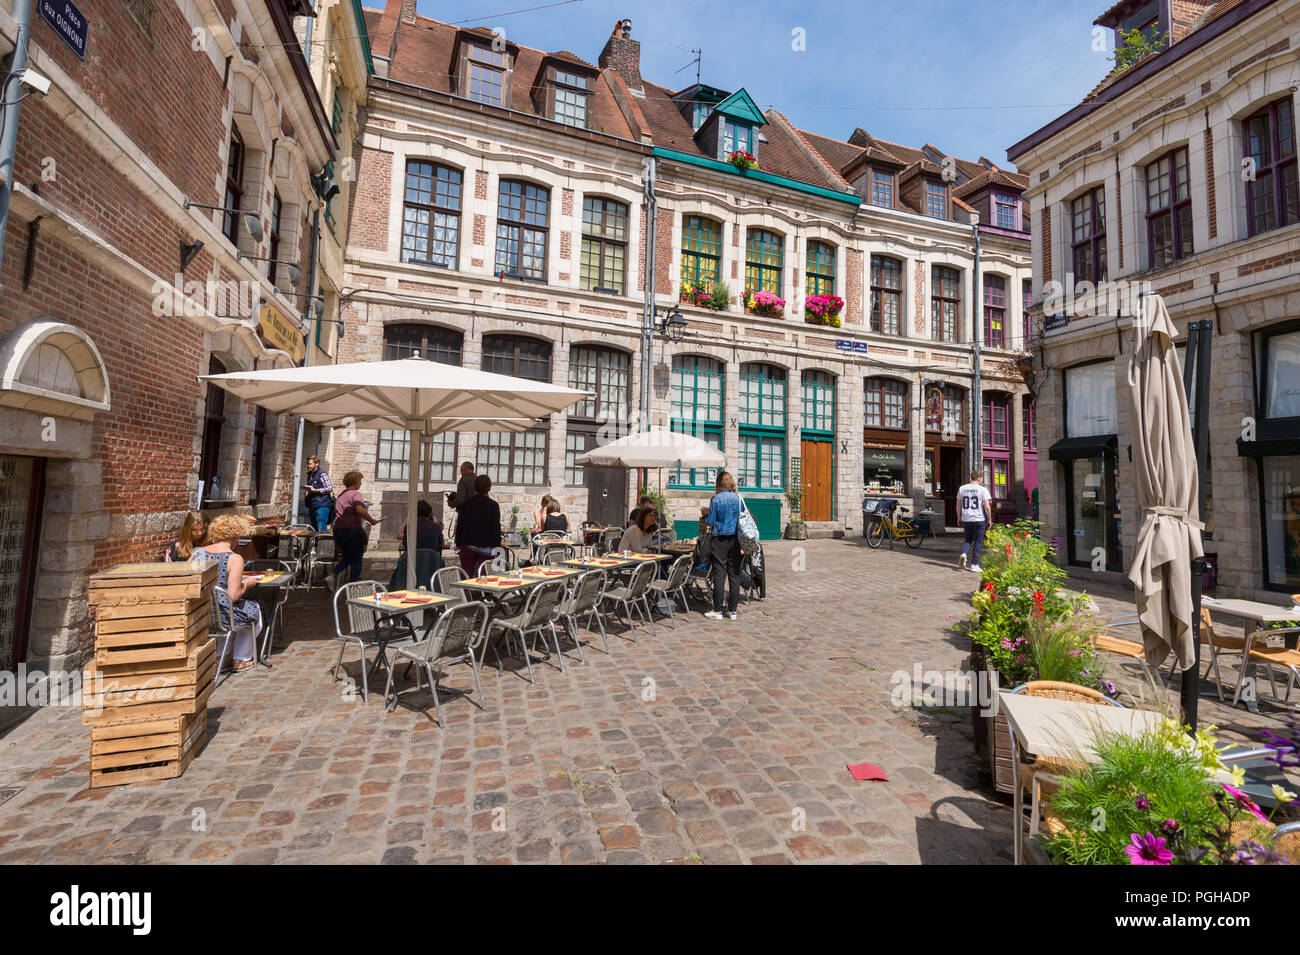 Lille, France - 15 June 2018: Paved square 'Place des oignons', located in the historical neighbourhood Vieux Lille - Stock Image